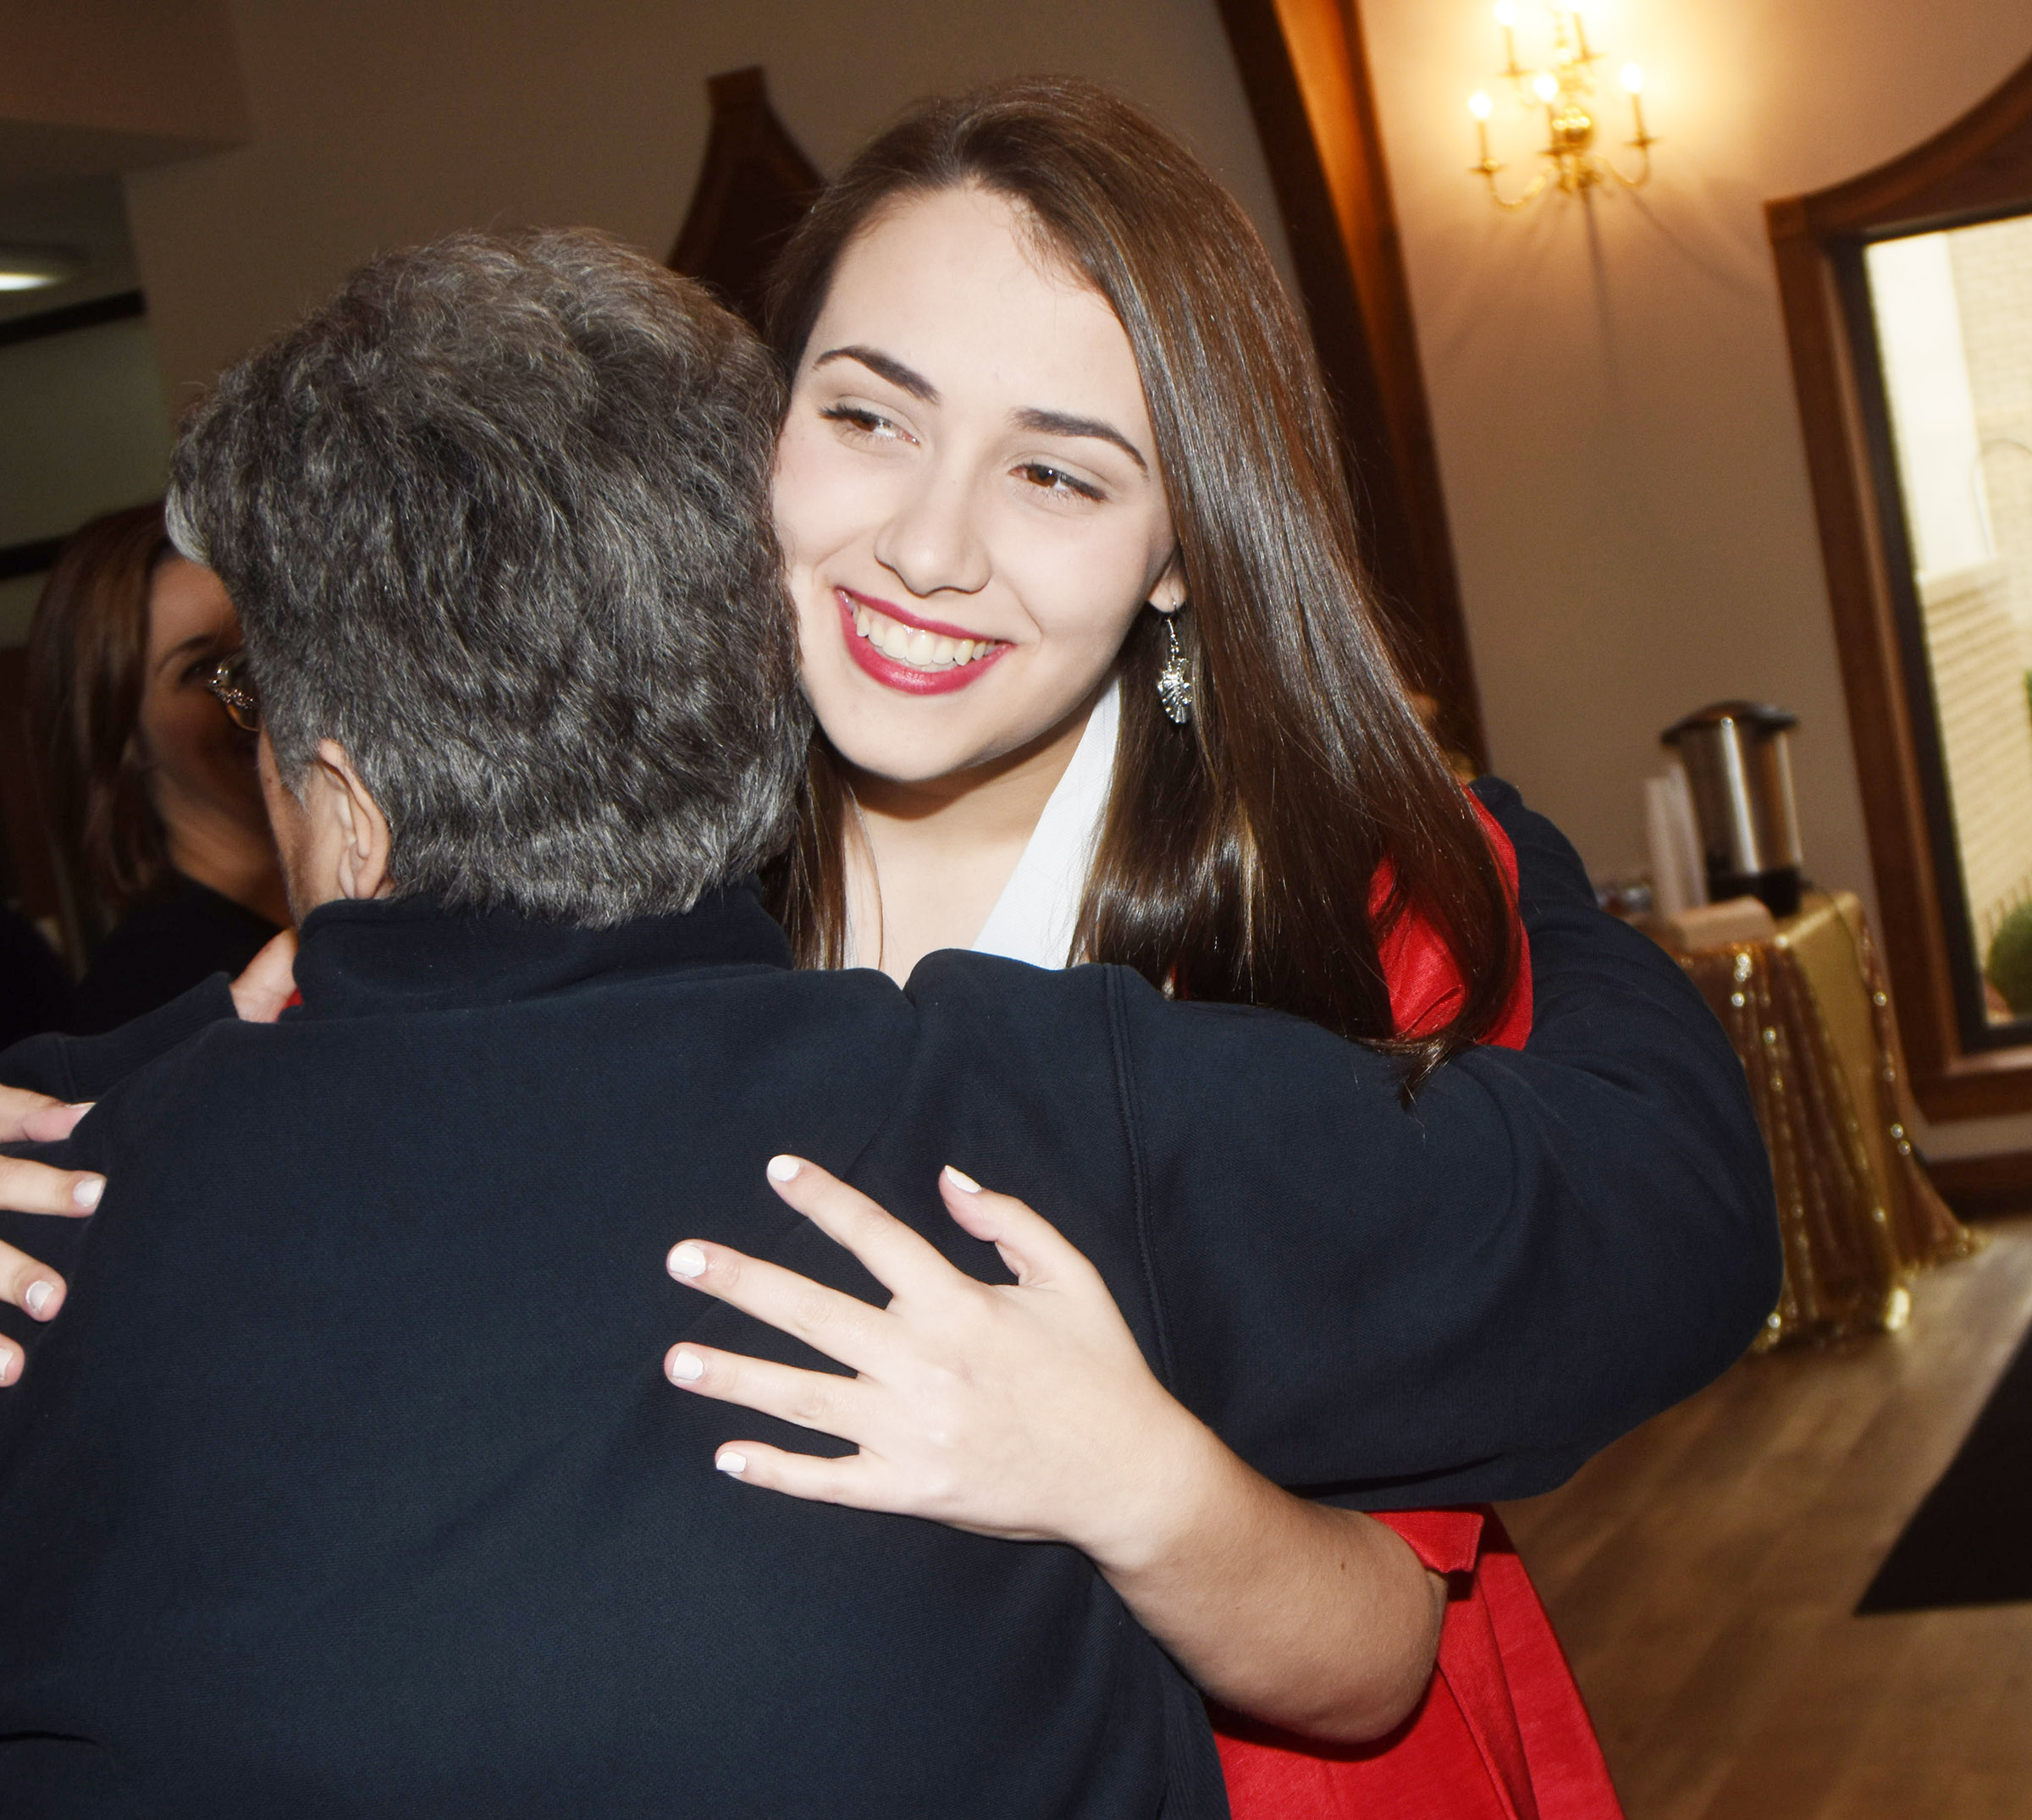 CHS senior Elizabeth Sullivan receives a hug at a reception hosted in her honor as she prepares to participate in the Kentucky DYW program. The state program is Jan. 11 and 12 in Lexington.